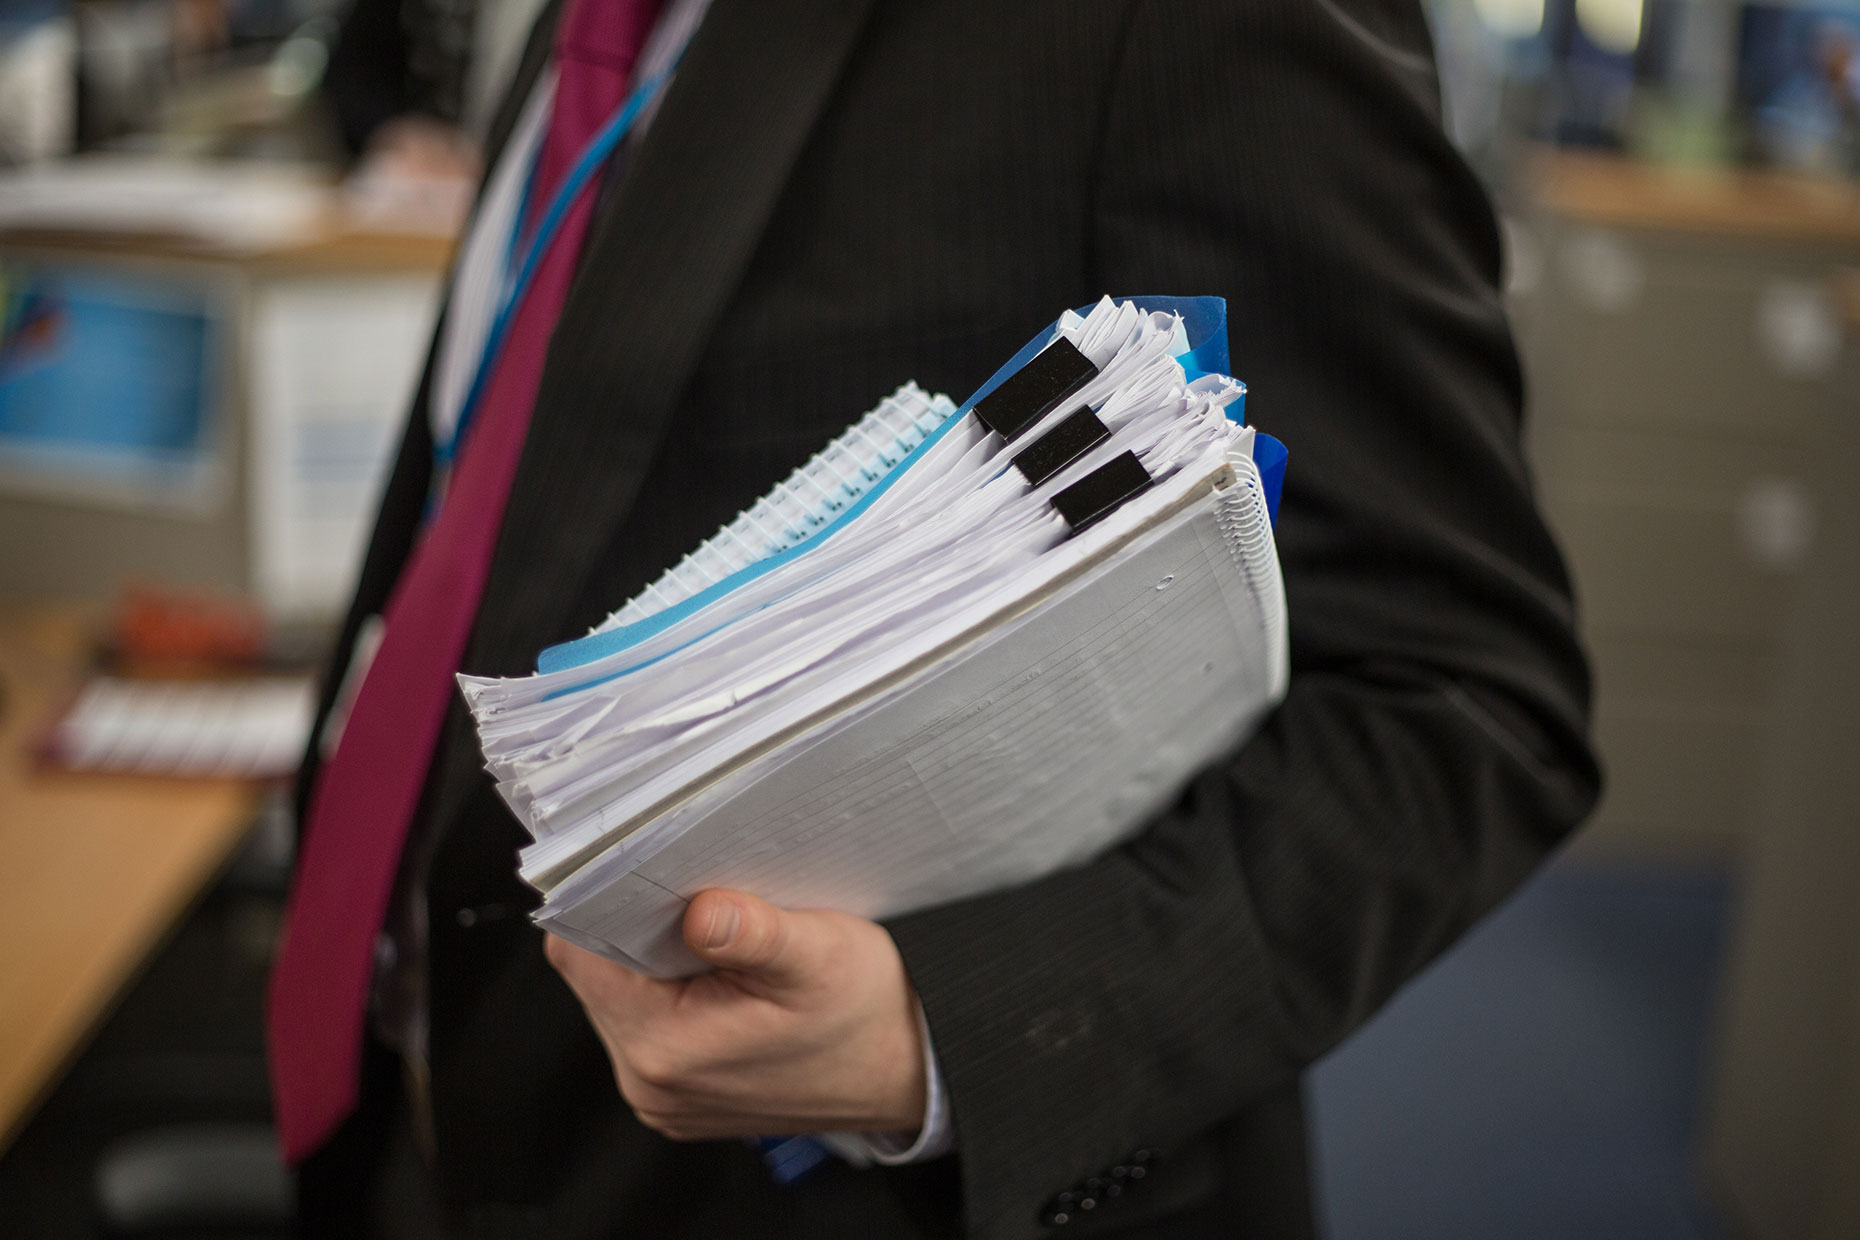 Businessman carried files by Scotland corporate photographer J. Sutton-Hibbert